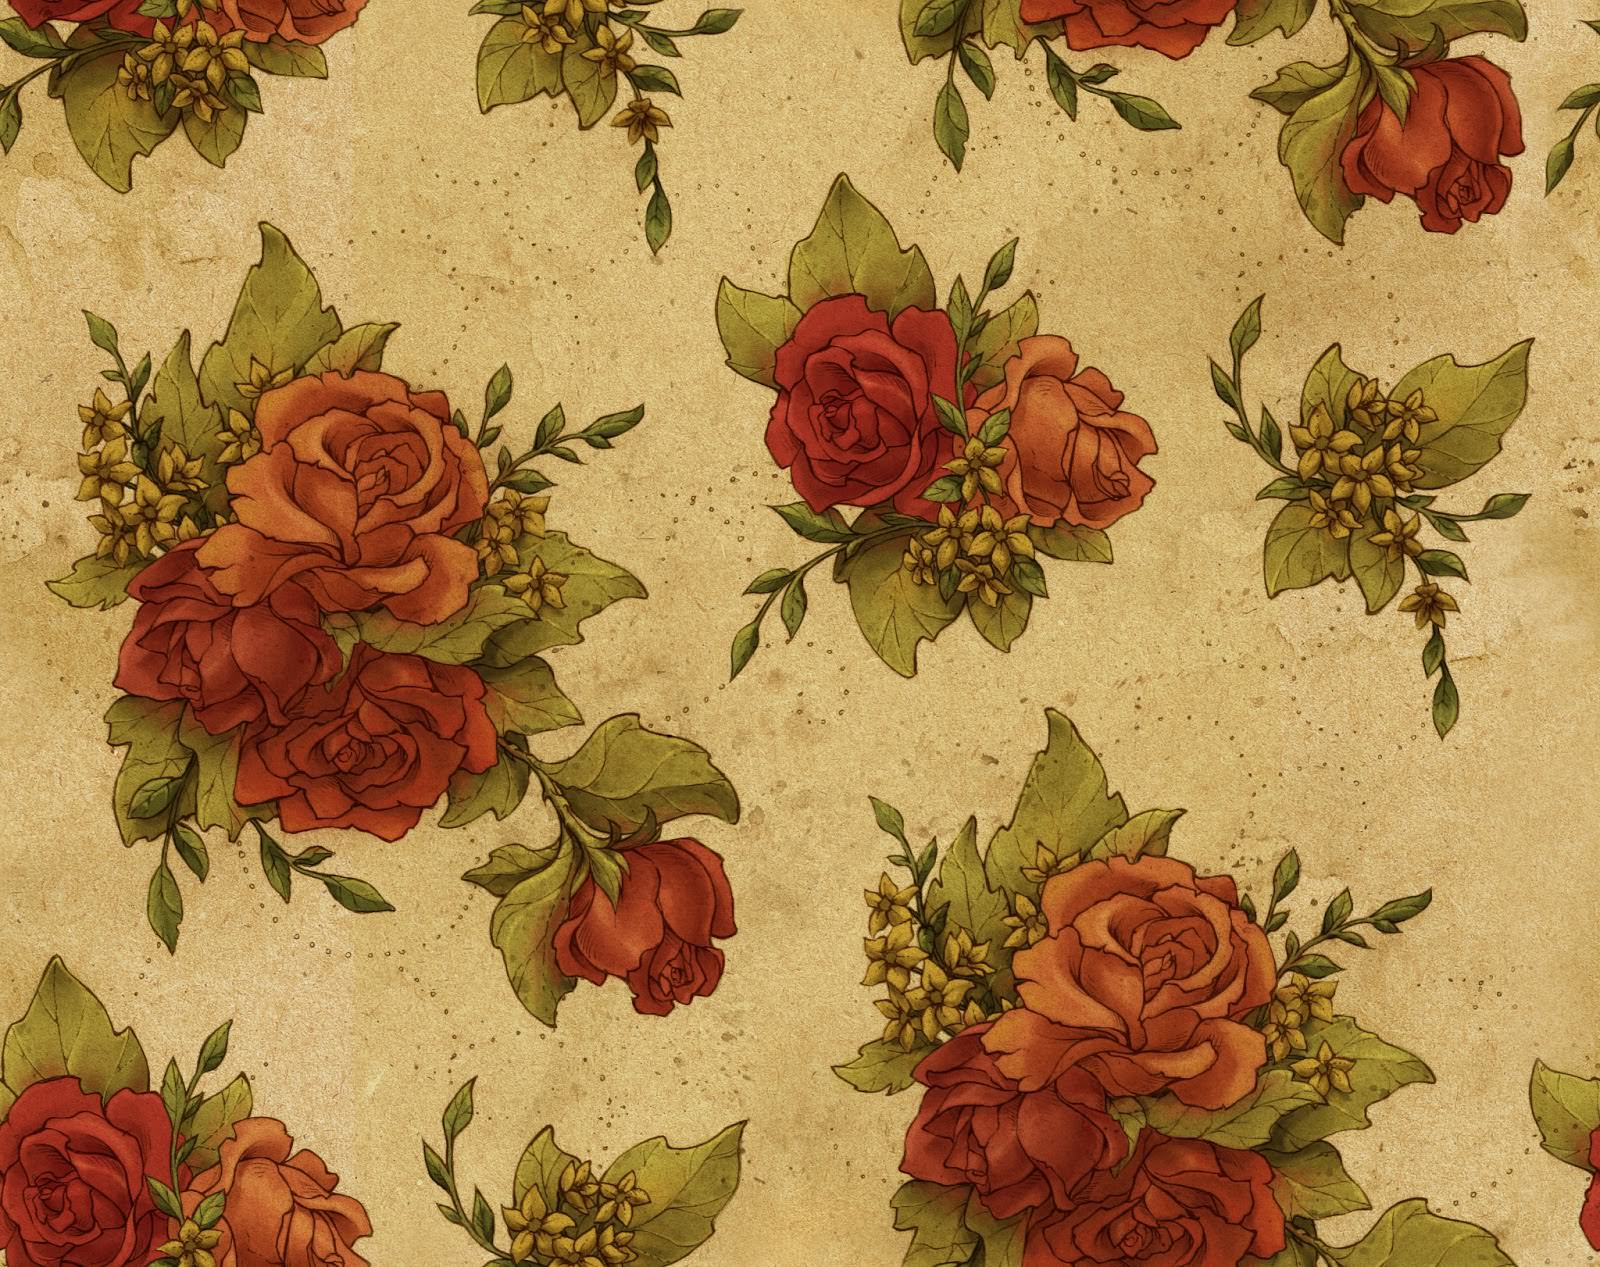 Free Floral Wallpaper Downloads